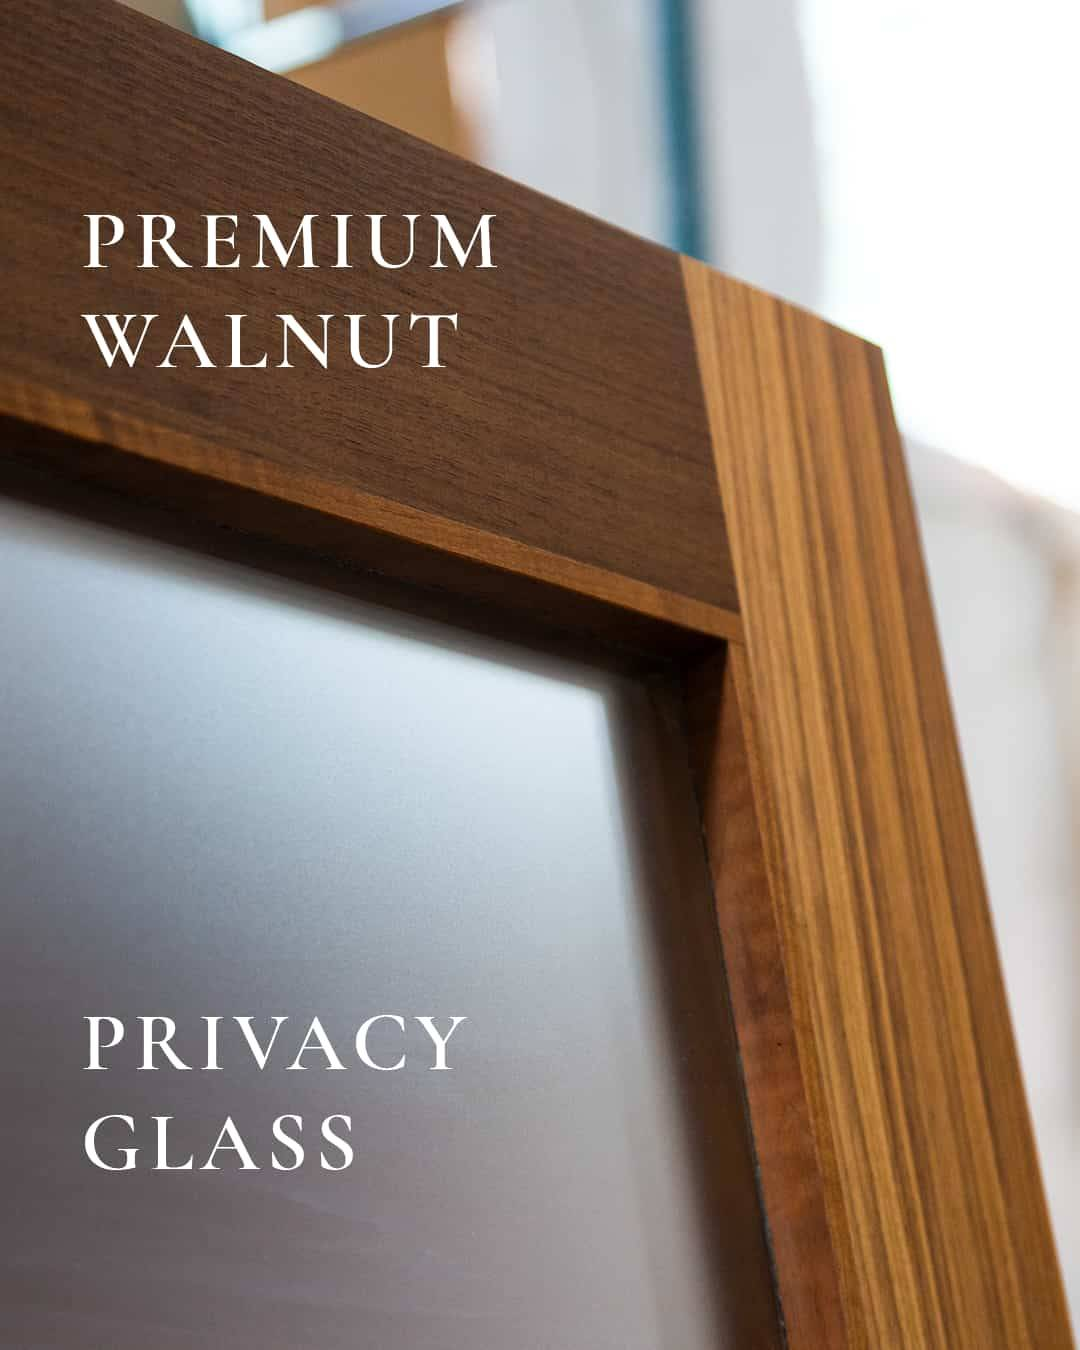 Modern Five Panel Glass Sliding barn door handcrafted with Premium Walnut wood and Crystal etched Glass. Close up shot of left edge showcasing wood grain and glass.